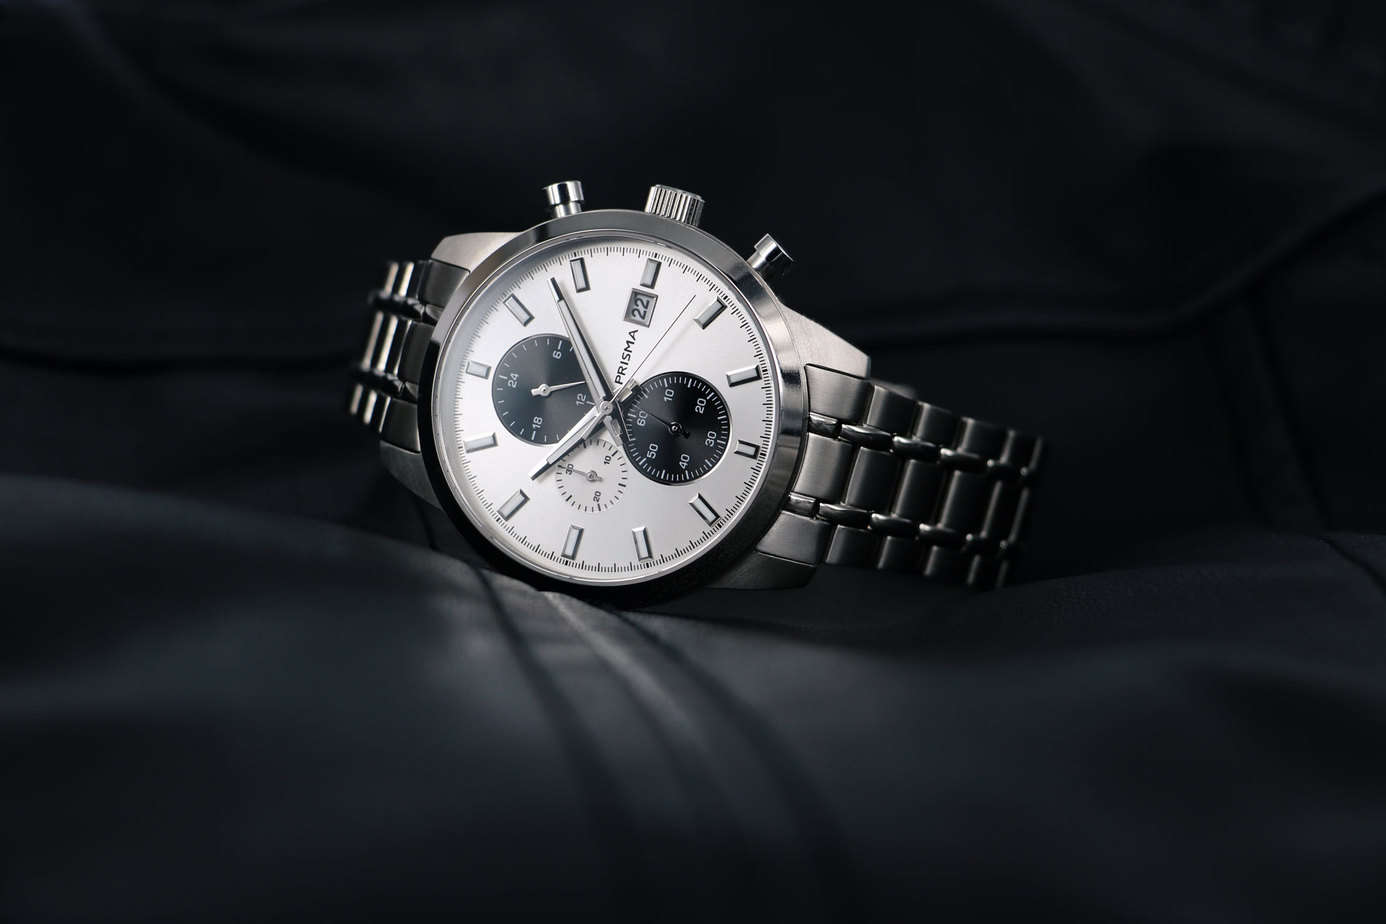 prisma traveller titanium chronograaf chronograph P.1946 horloges watches